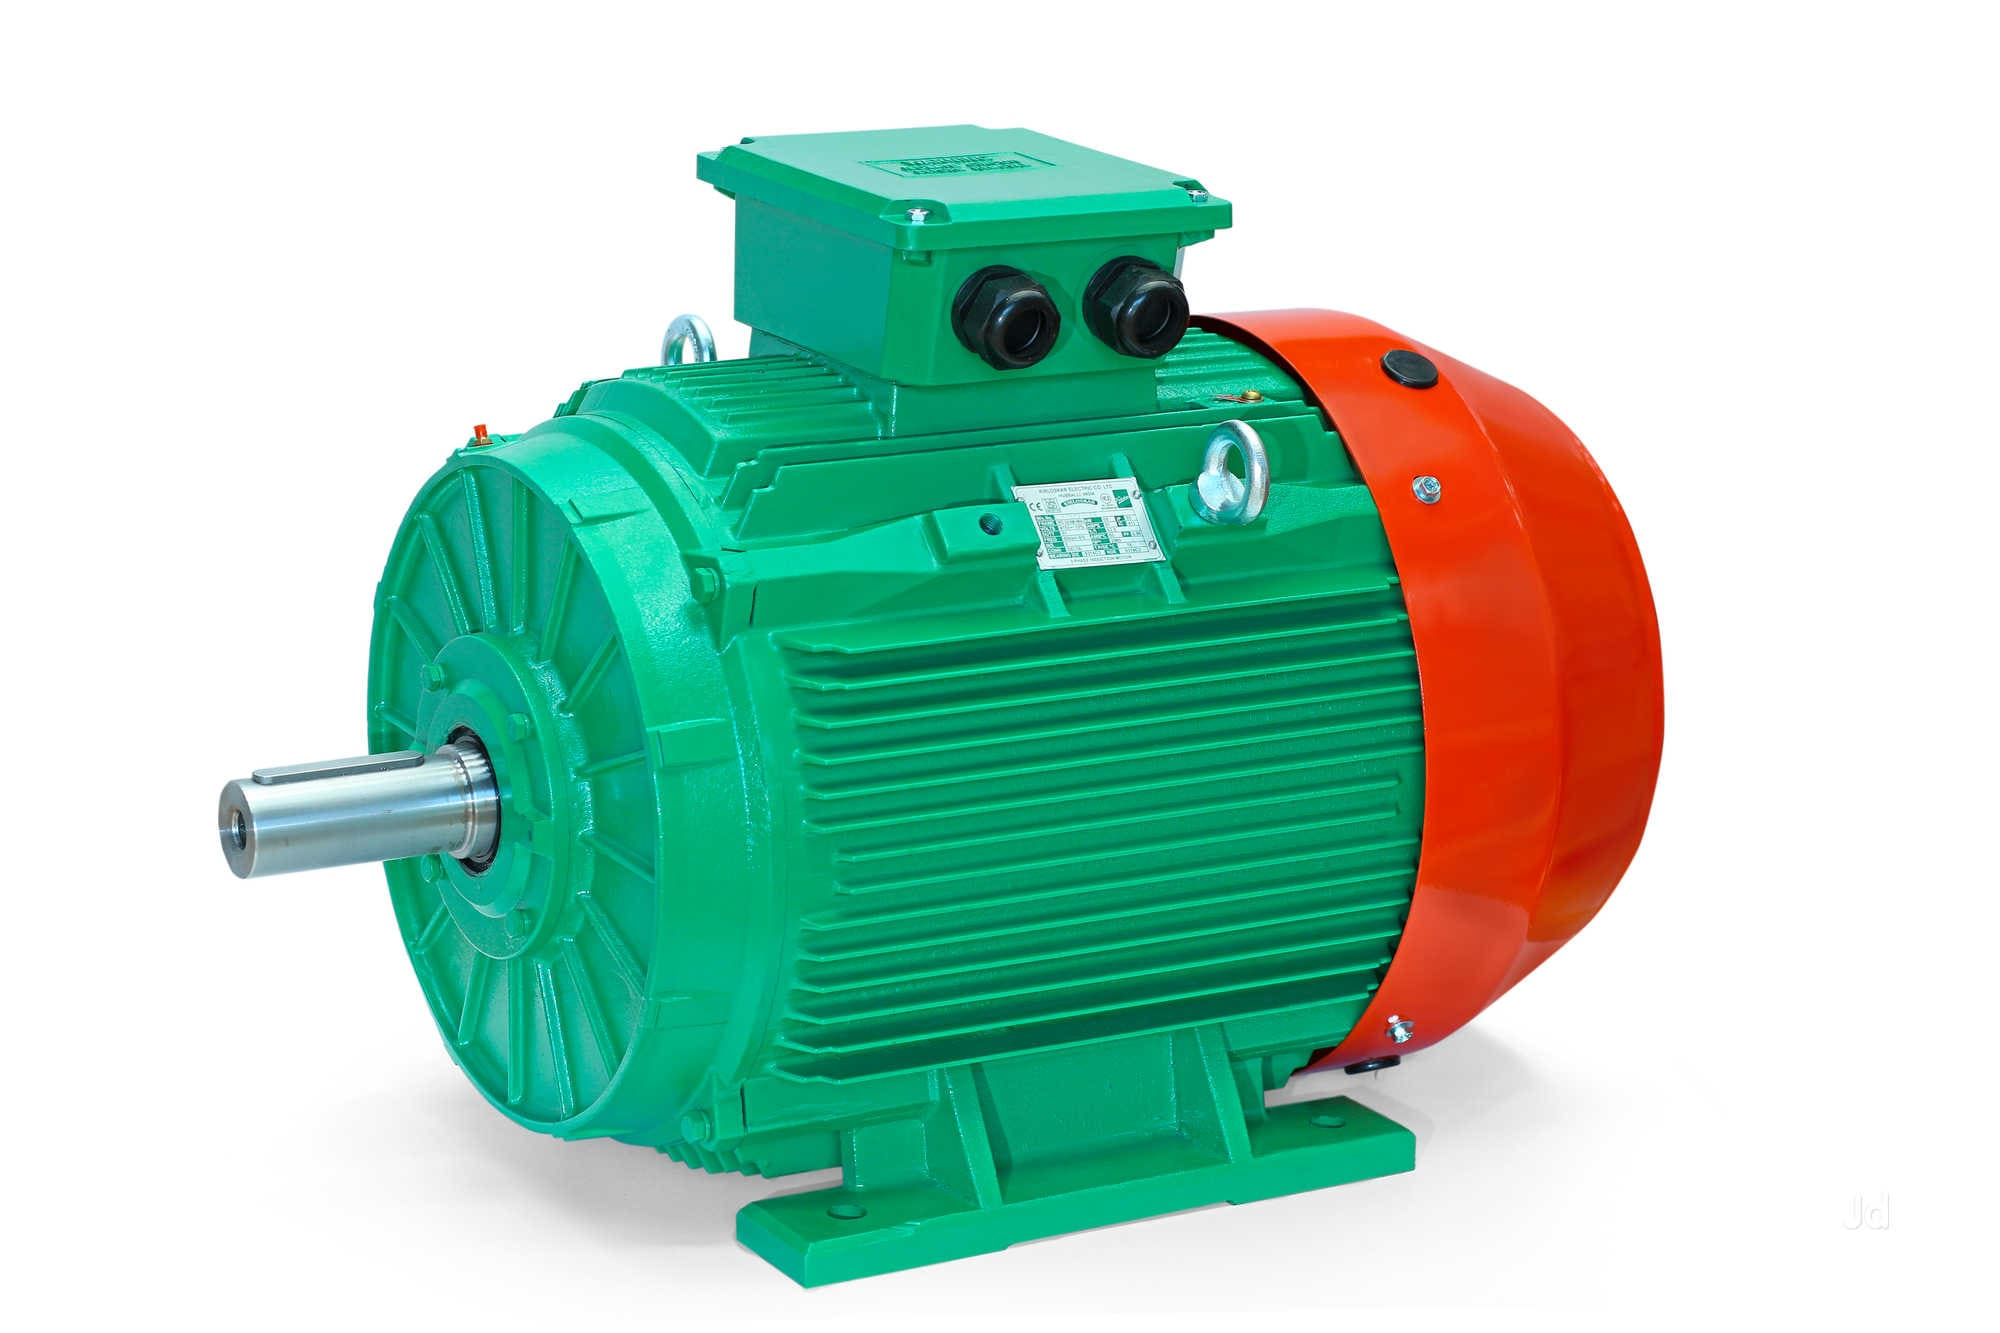 KSB Pump Dealers & Suppliers in Trichy - Justdial